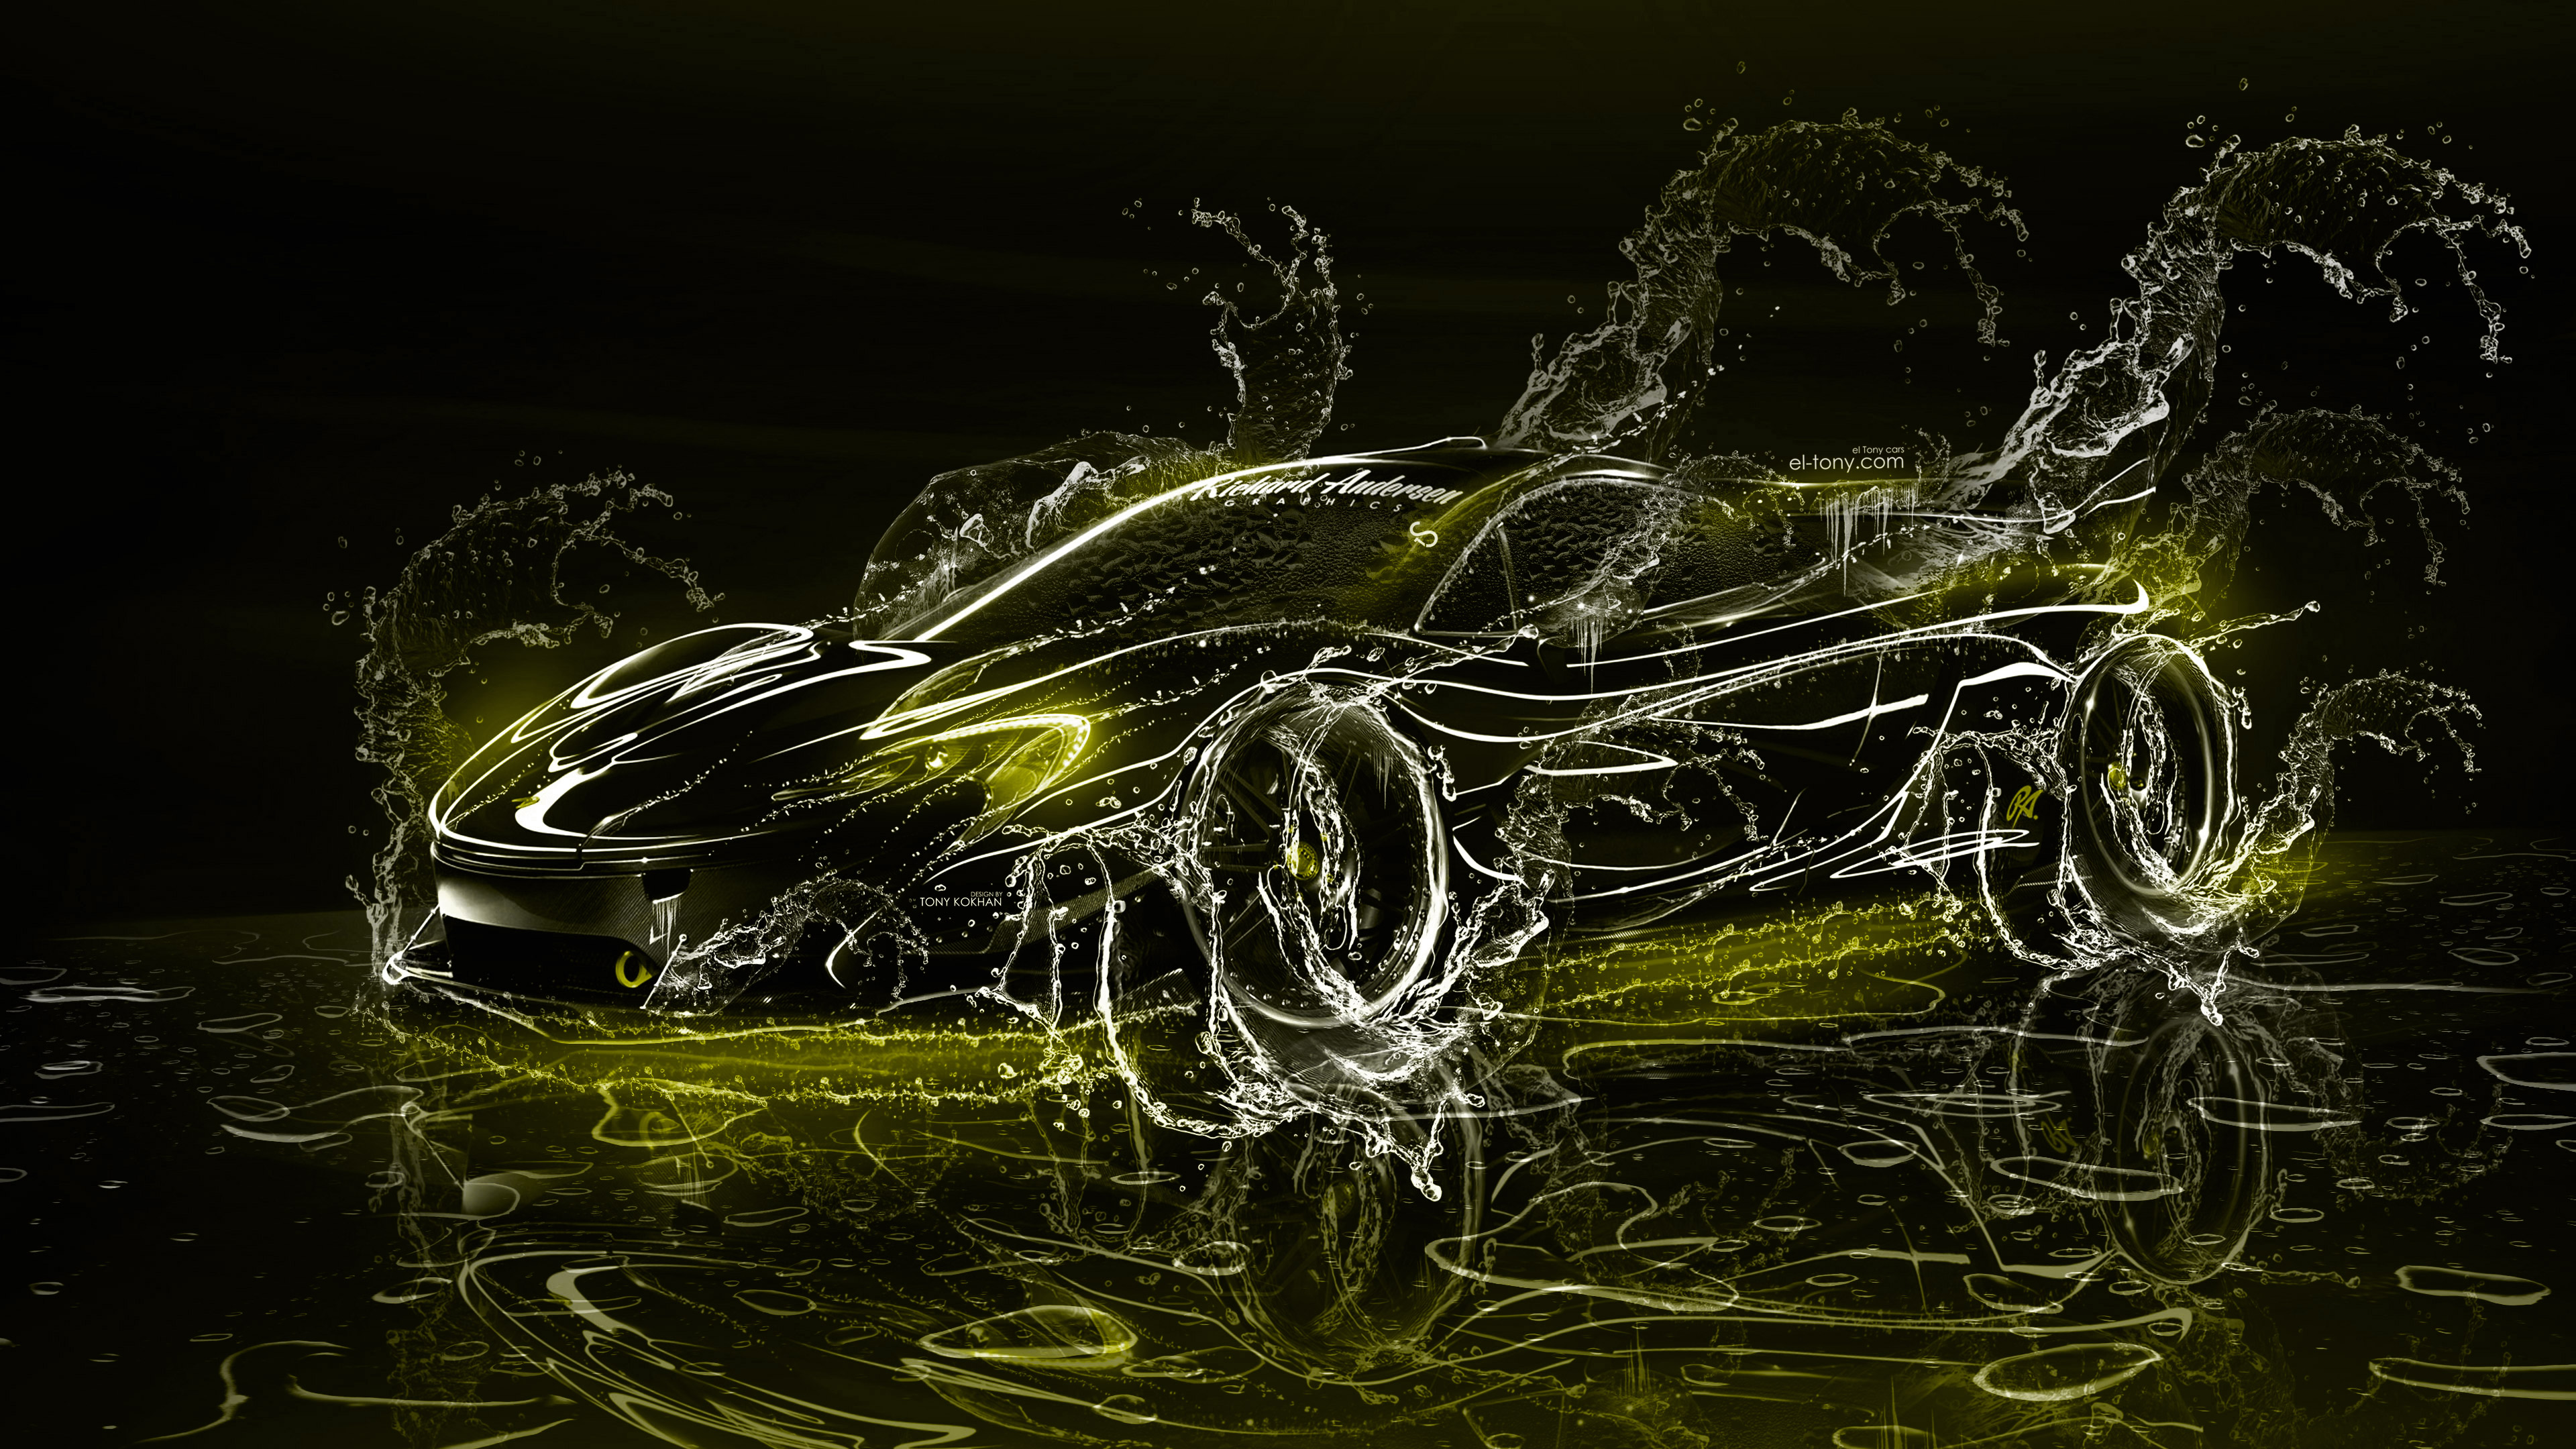 Mclaren P1 Super 3d Water Splashes Car 2017 El Tony